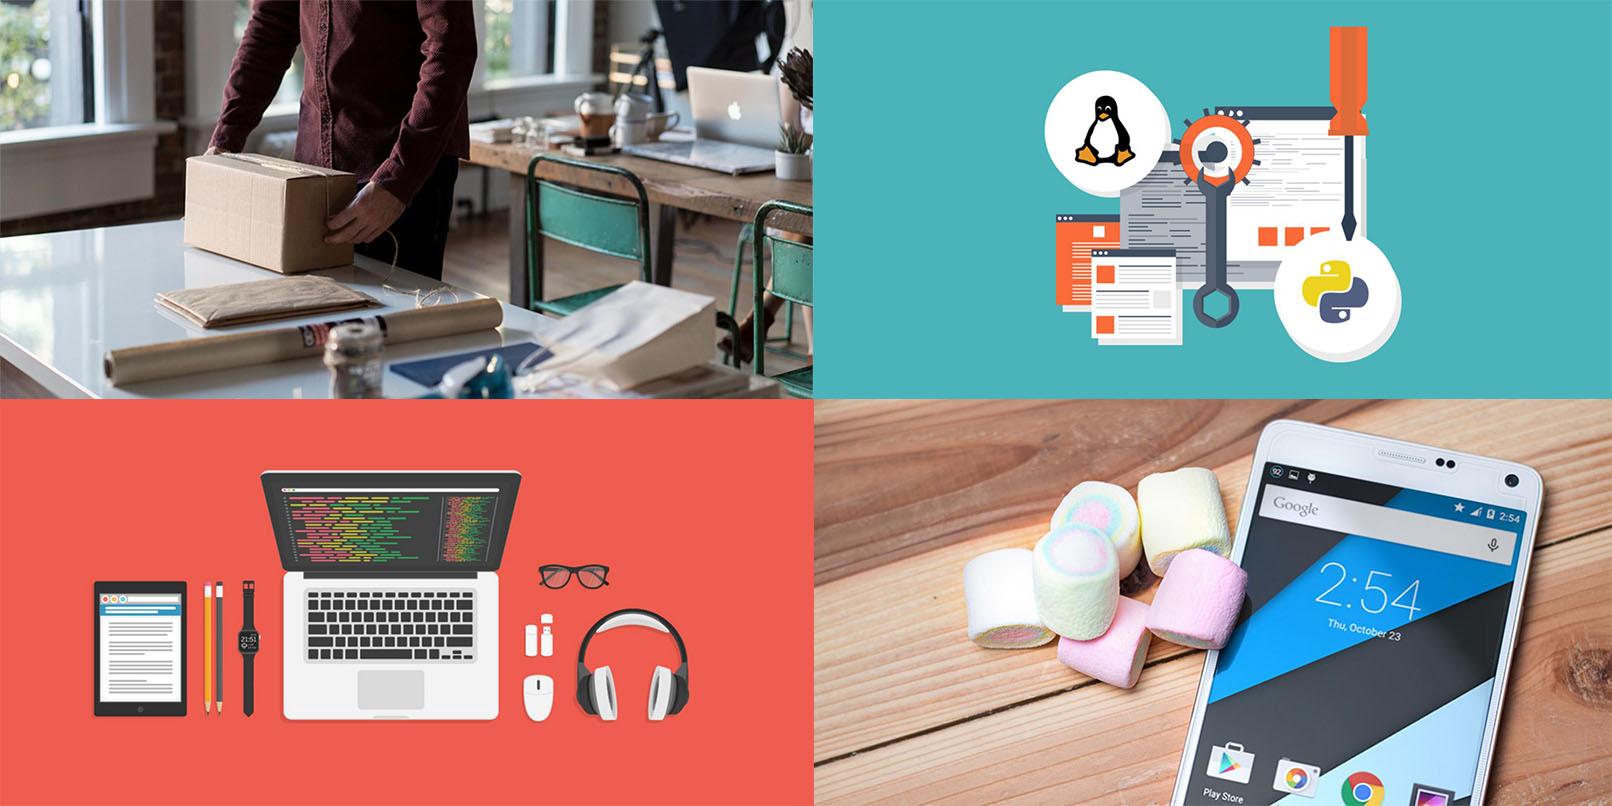 Check out our killer lineup of training packages on everything from coding to entrepreneurship -- all at any price you want to pay